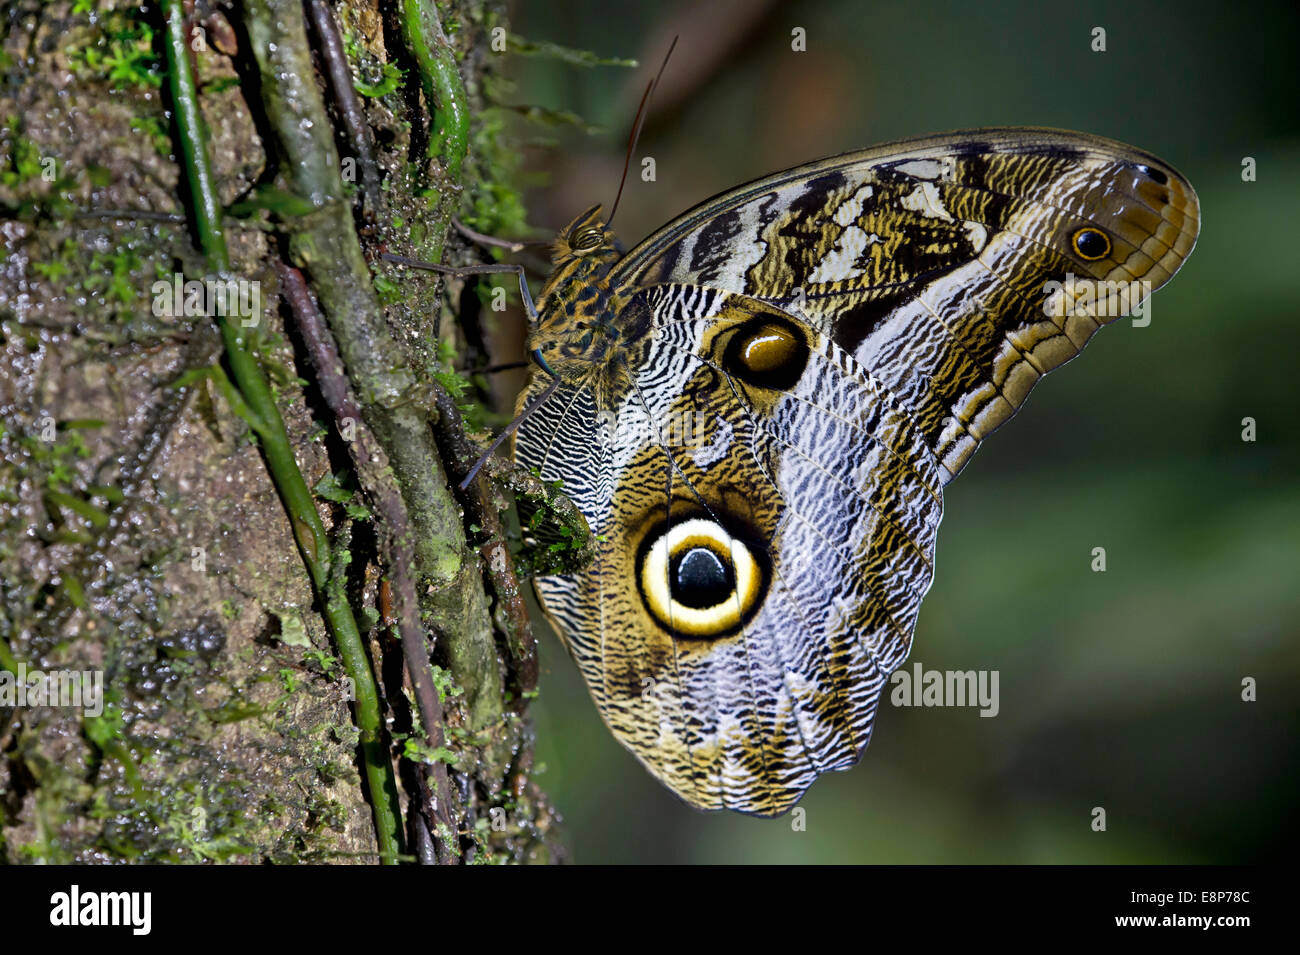 Owl butterfly (Caligo eurilochus), Brush-footed butterfly family (Nymphalidae), Tambopata National Reserve, Madre - Stock Image